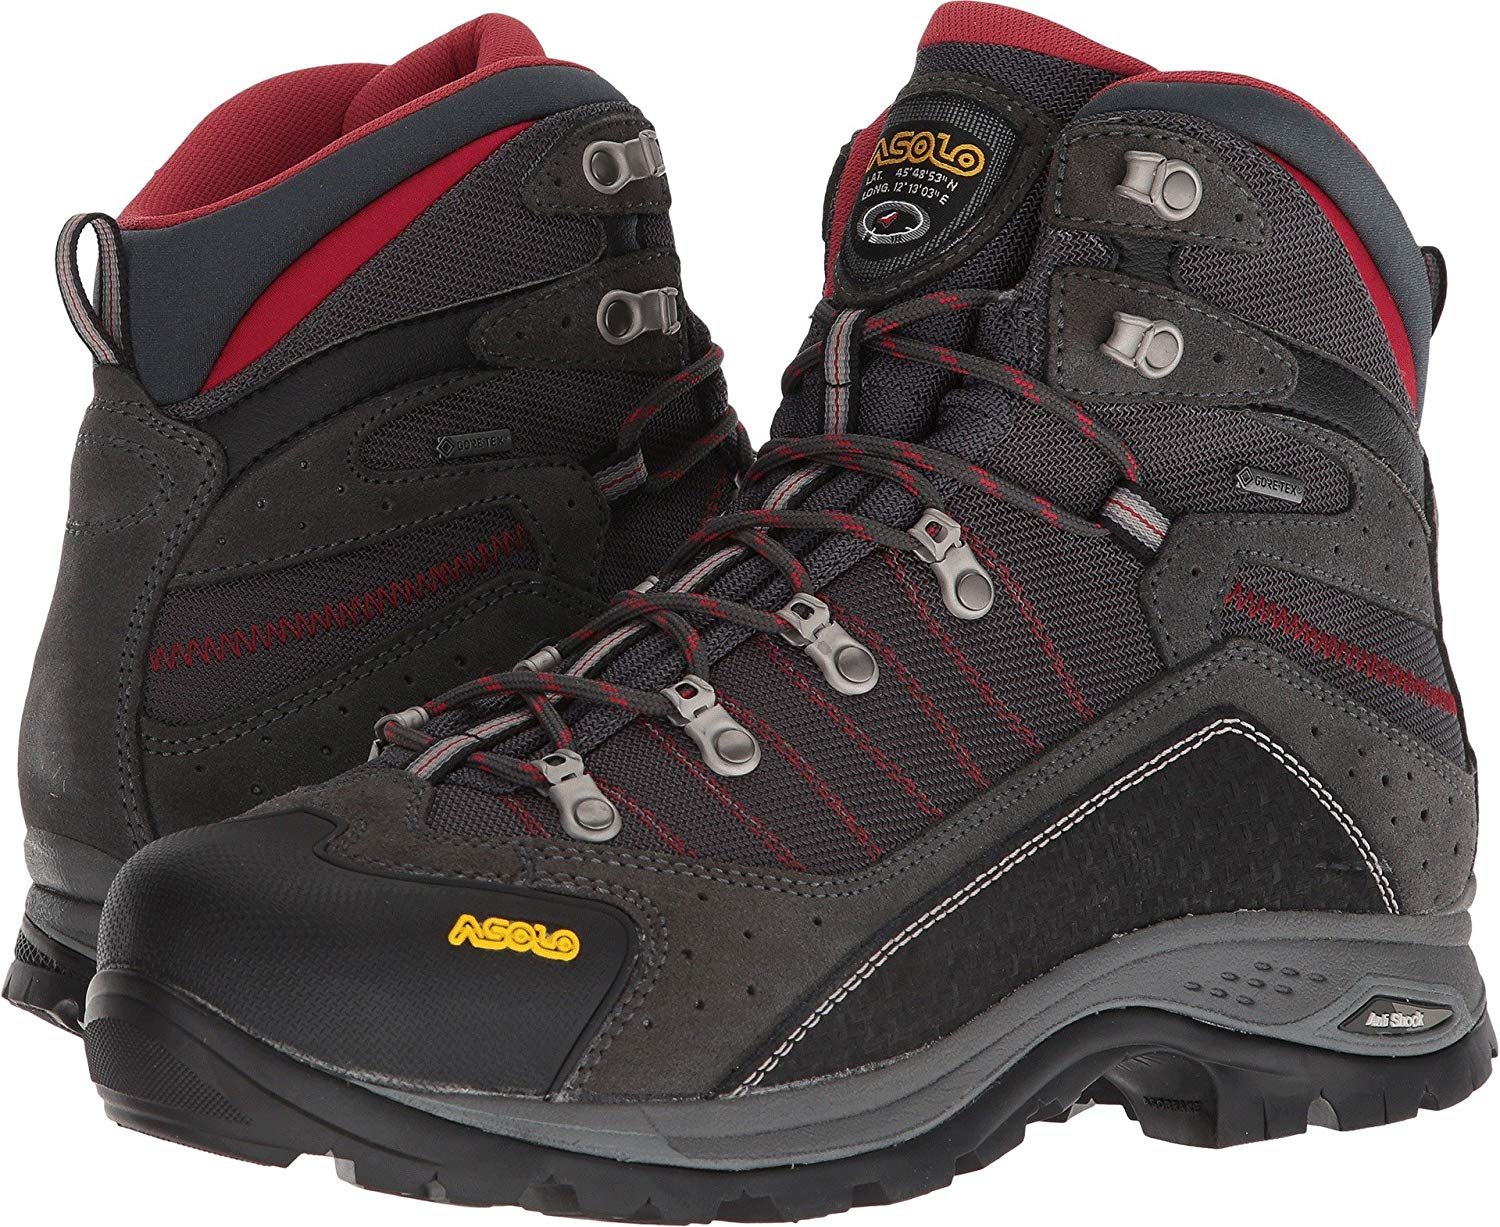 bb167a4ca9b Cheap Asolo Hiking Boots, find Asolo Hiking Boots deals on line at ...